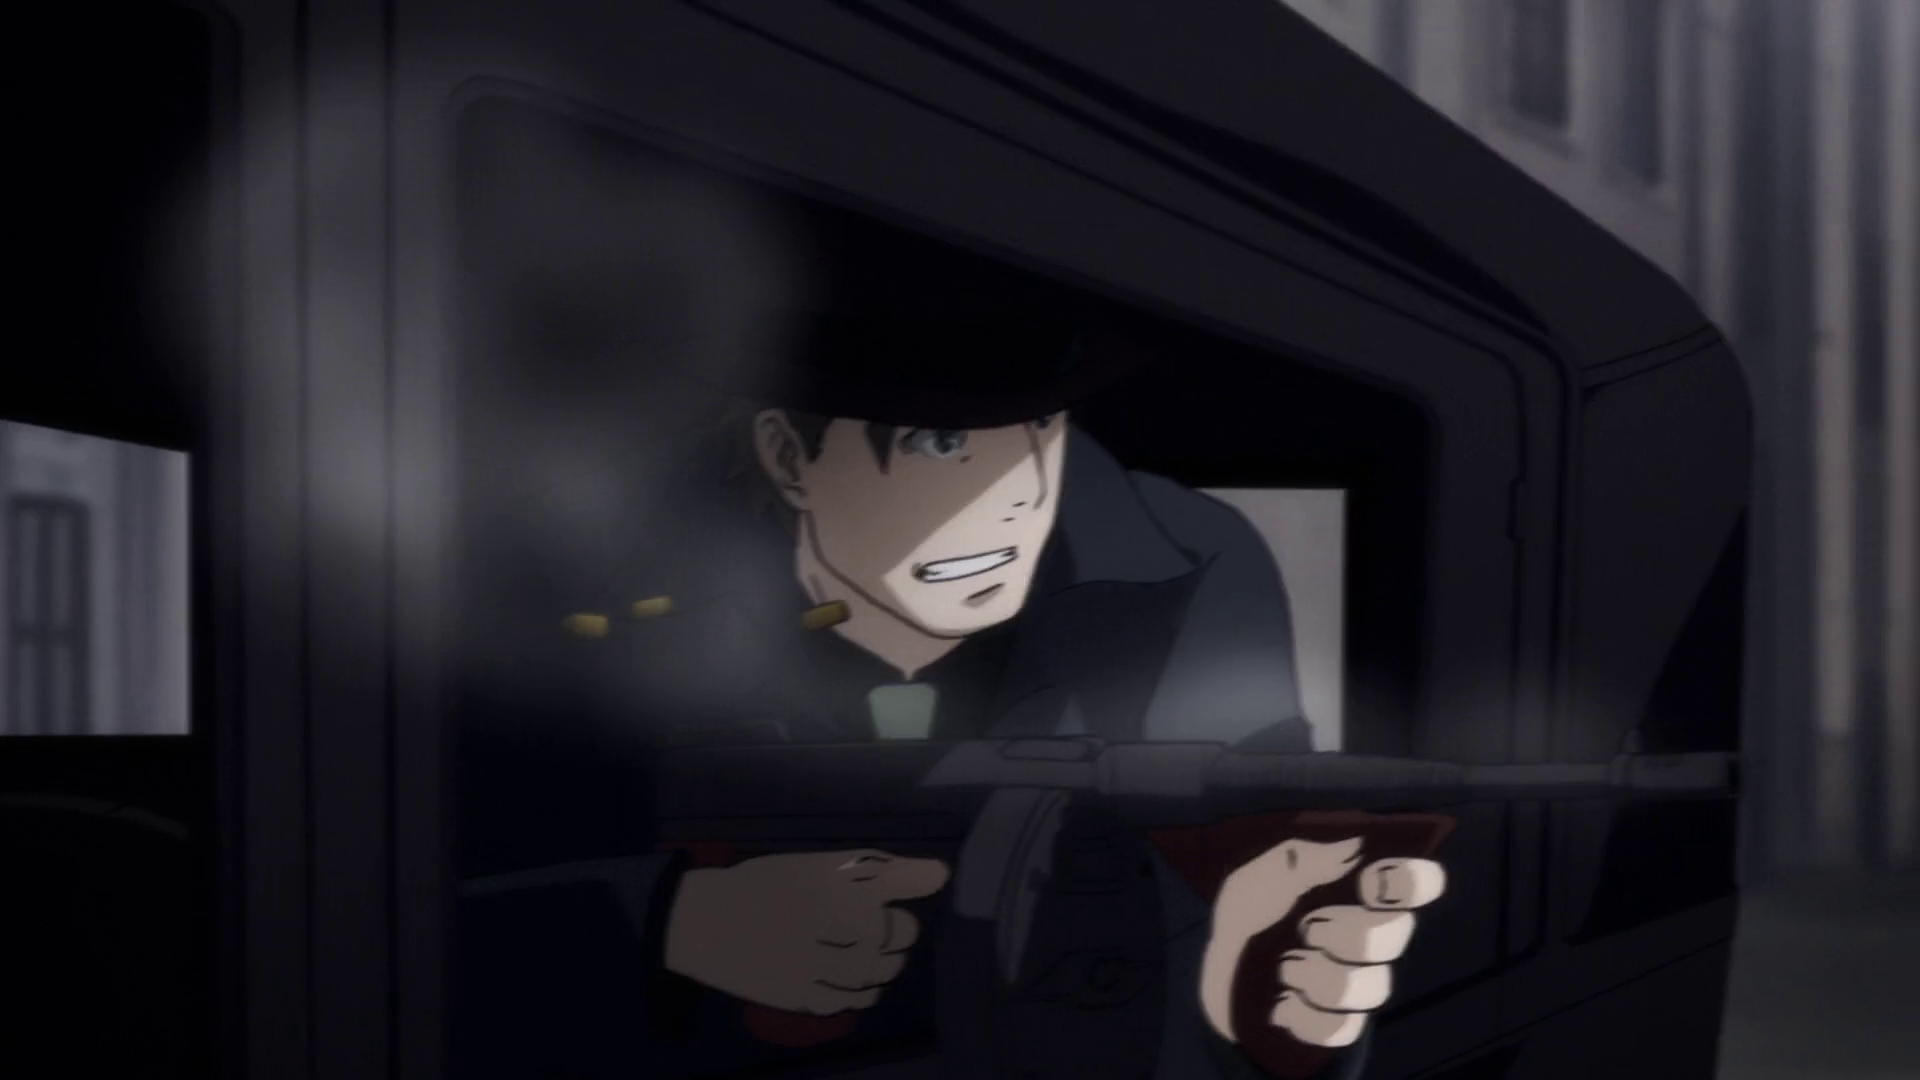 Image Vannoshootspng 91 Days Wikia Fandom Powered By Wikia